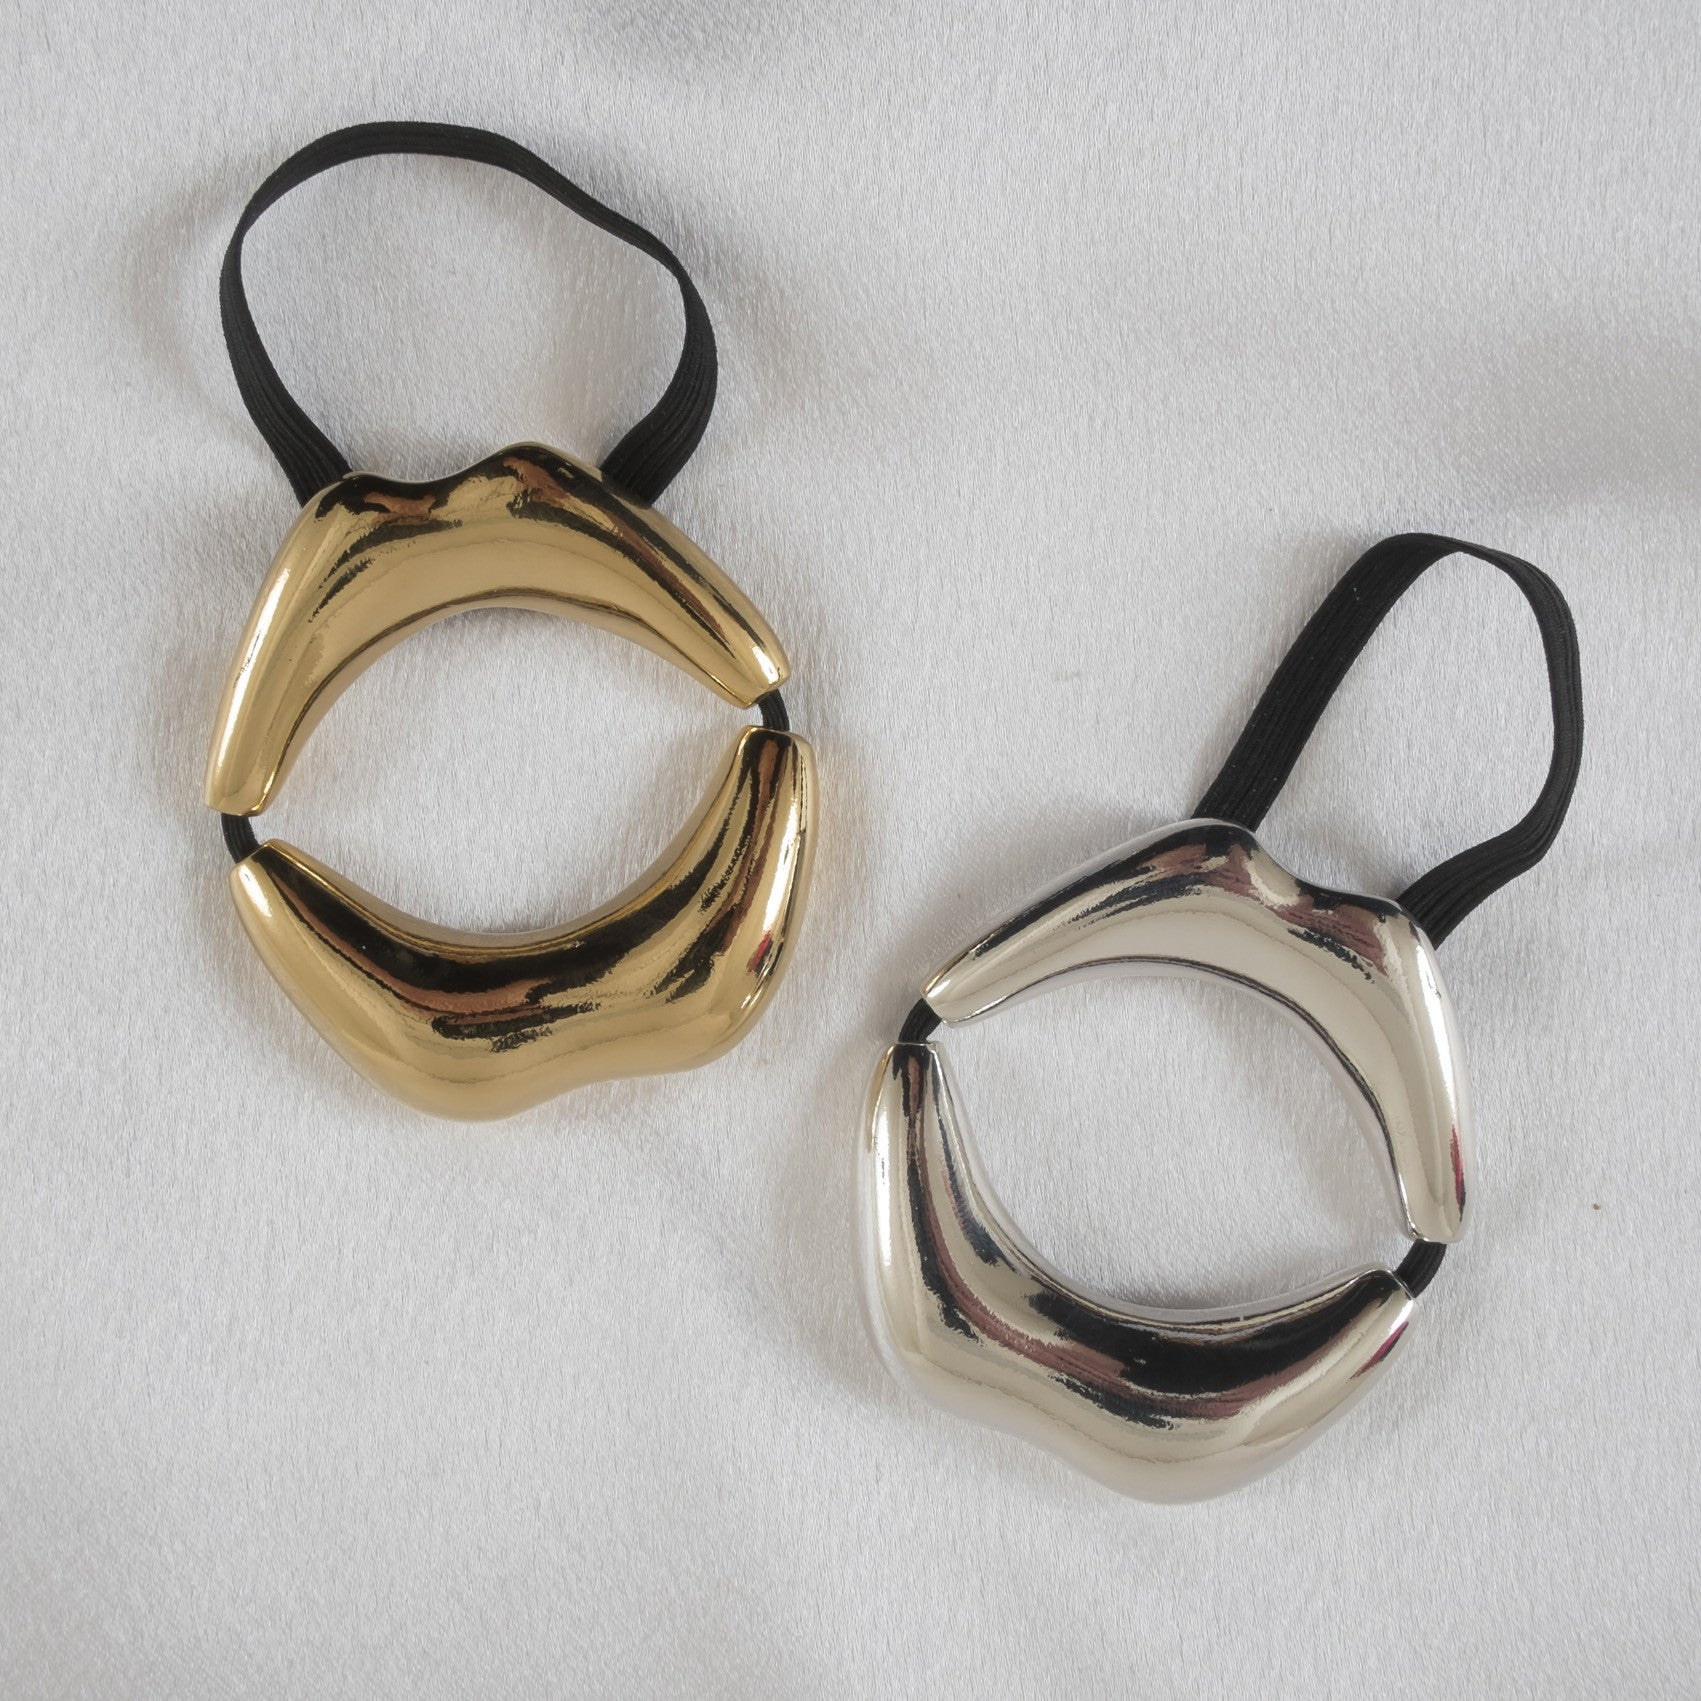 Men's silver or gold kiss cock ring